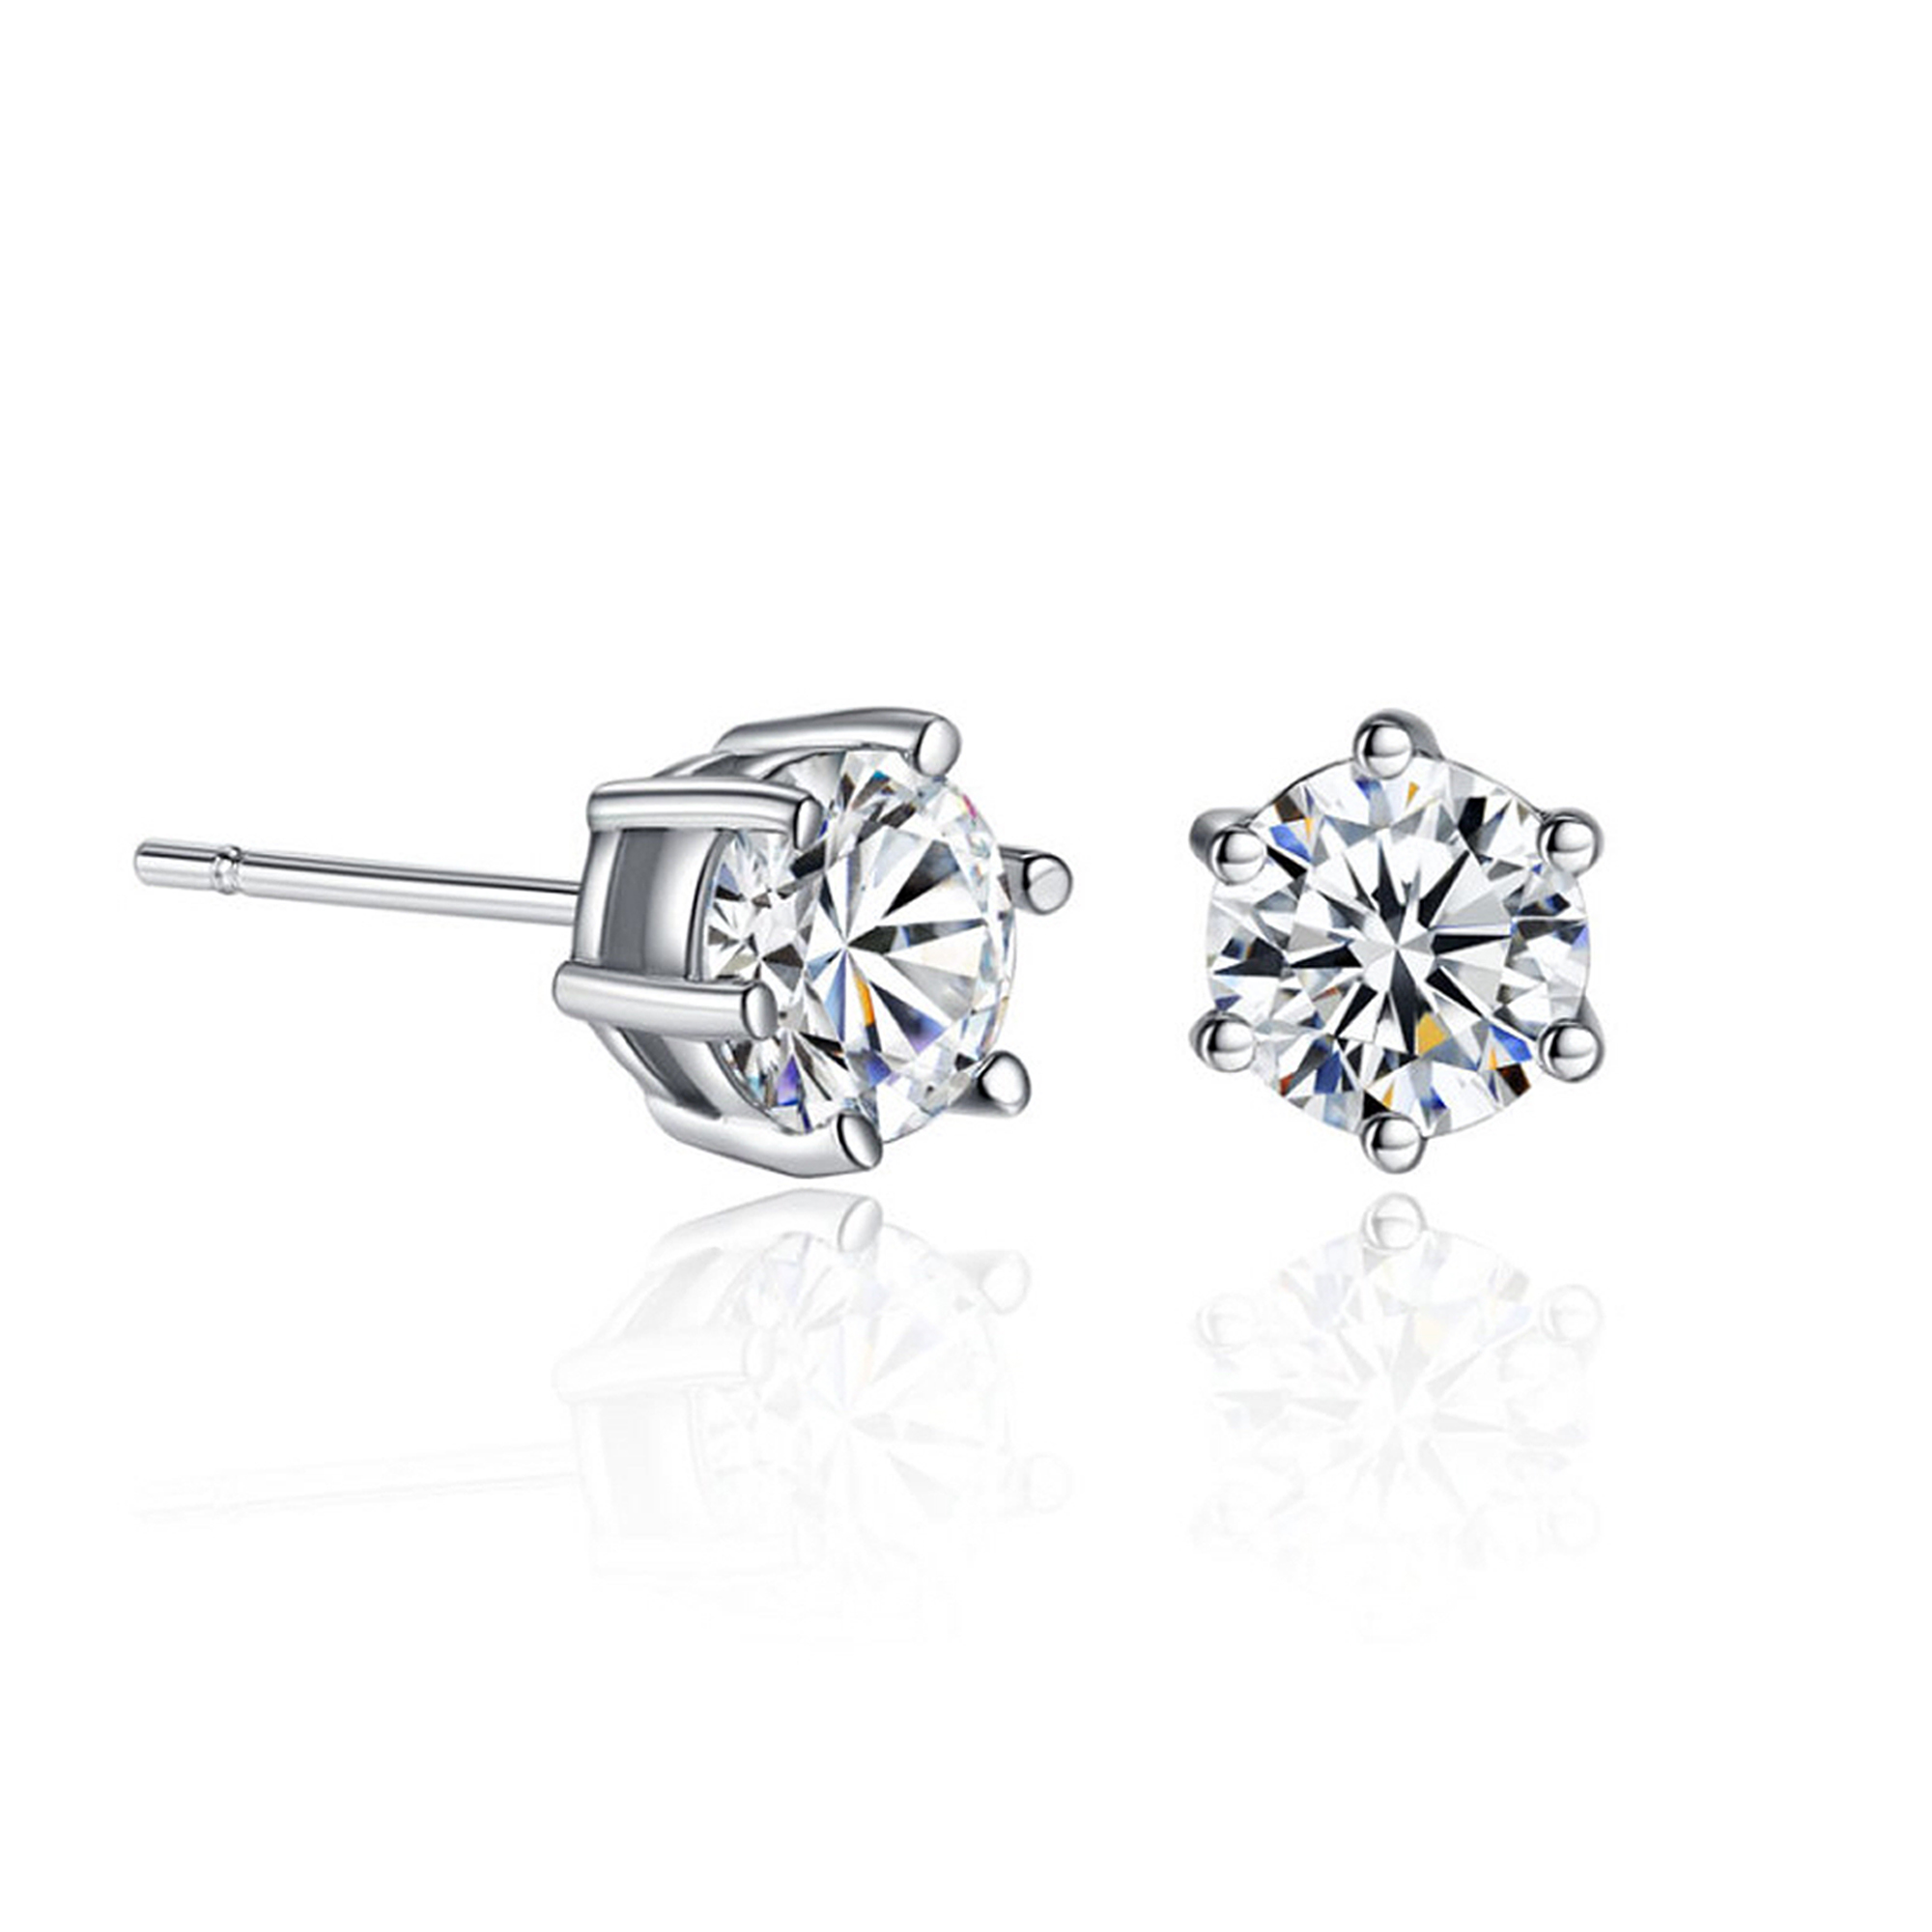 a pair jewellery collections stud earrings diamond classic round graff of